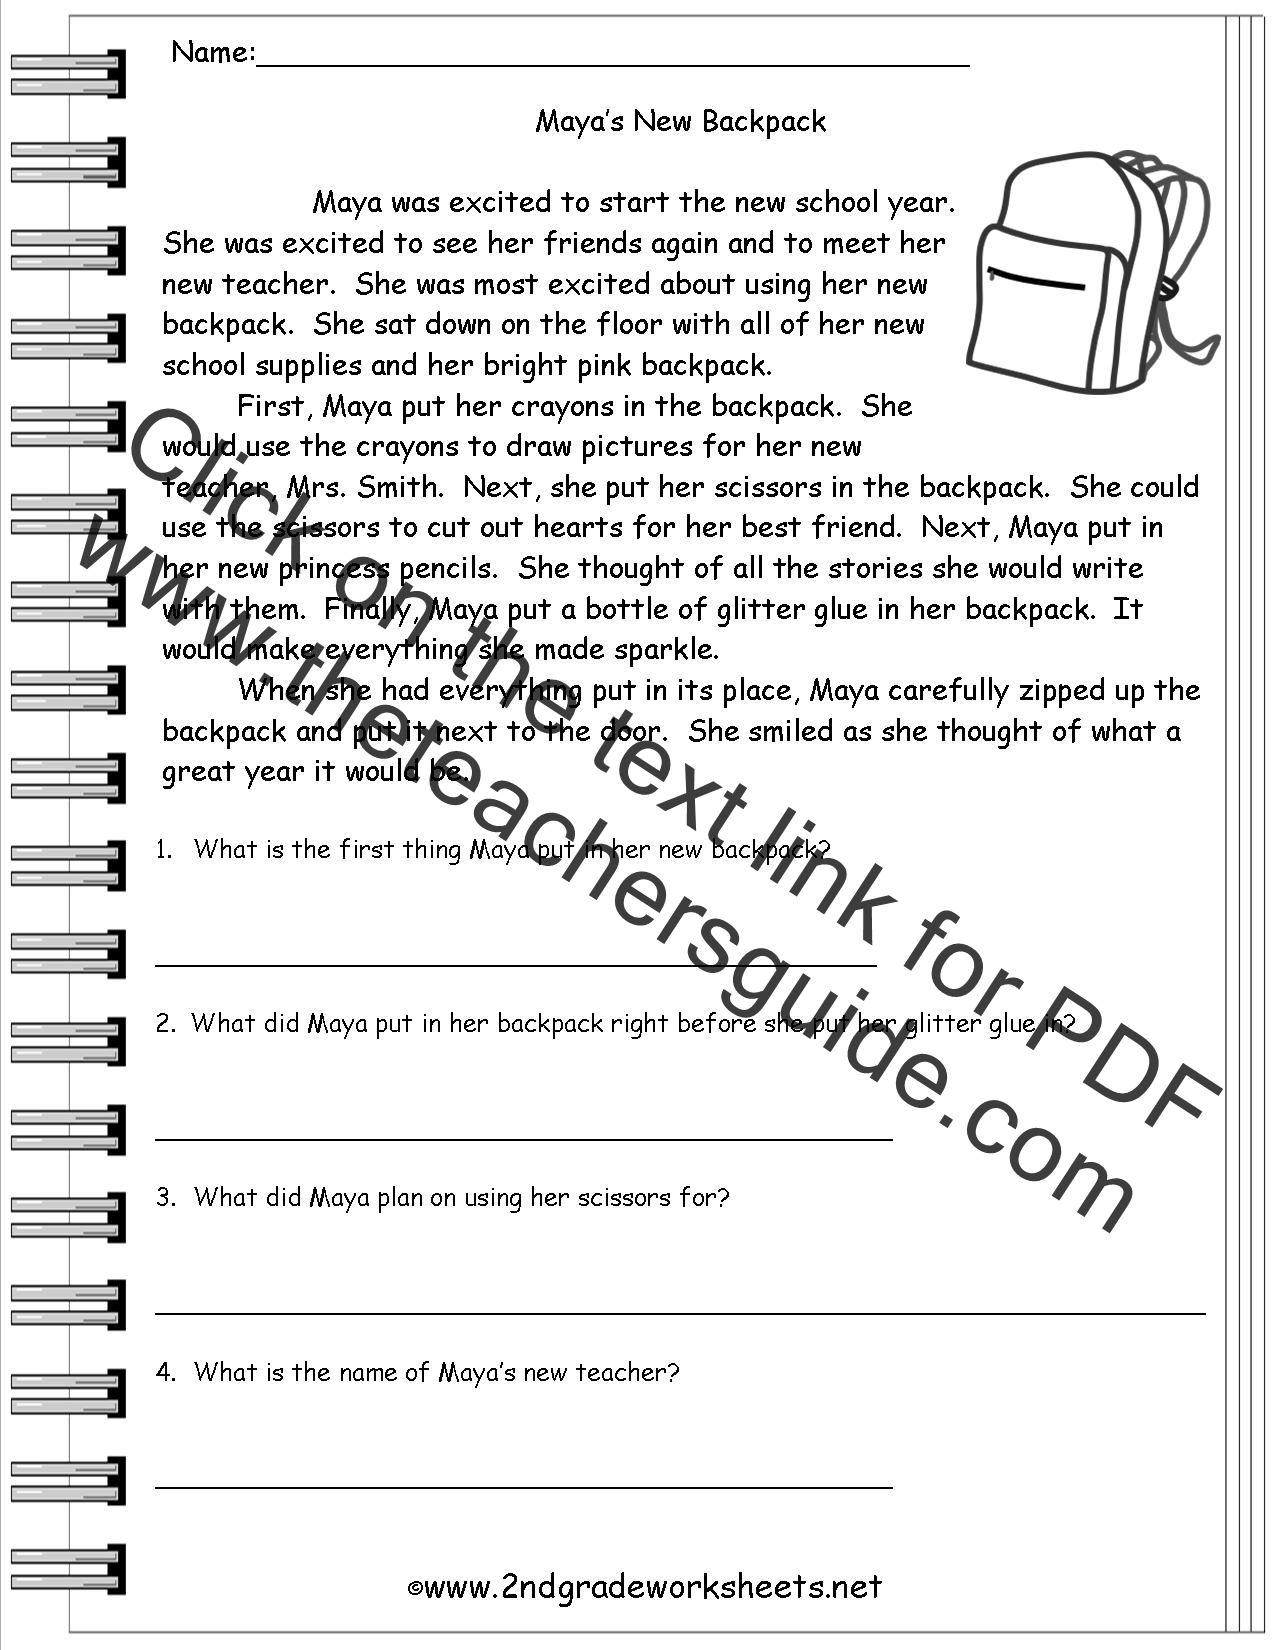 worksheet Fifth Grade Reading Comprehension Worksheets reading worksheeets worksheets